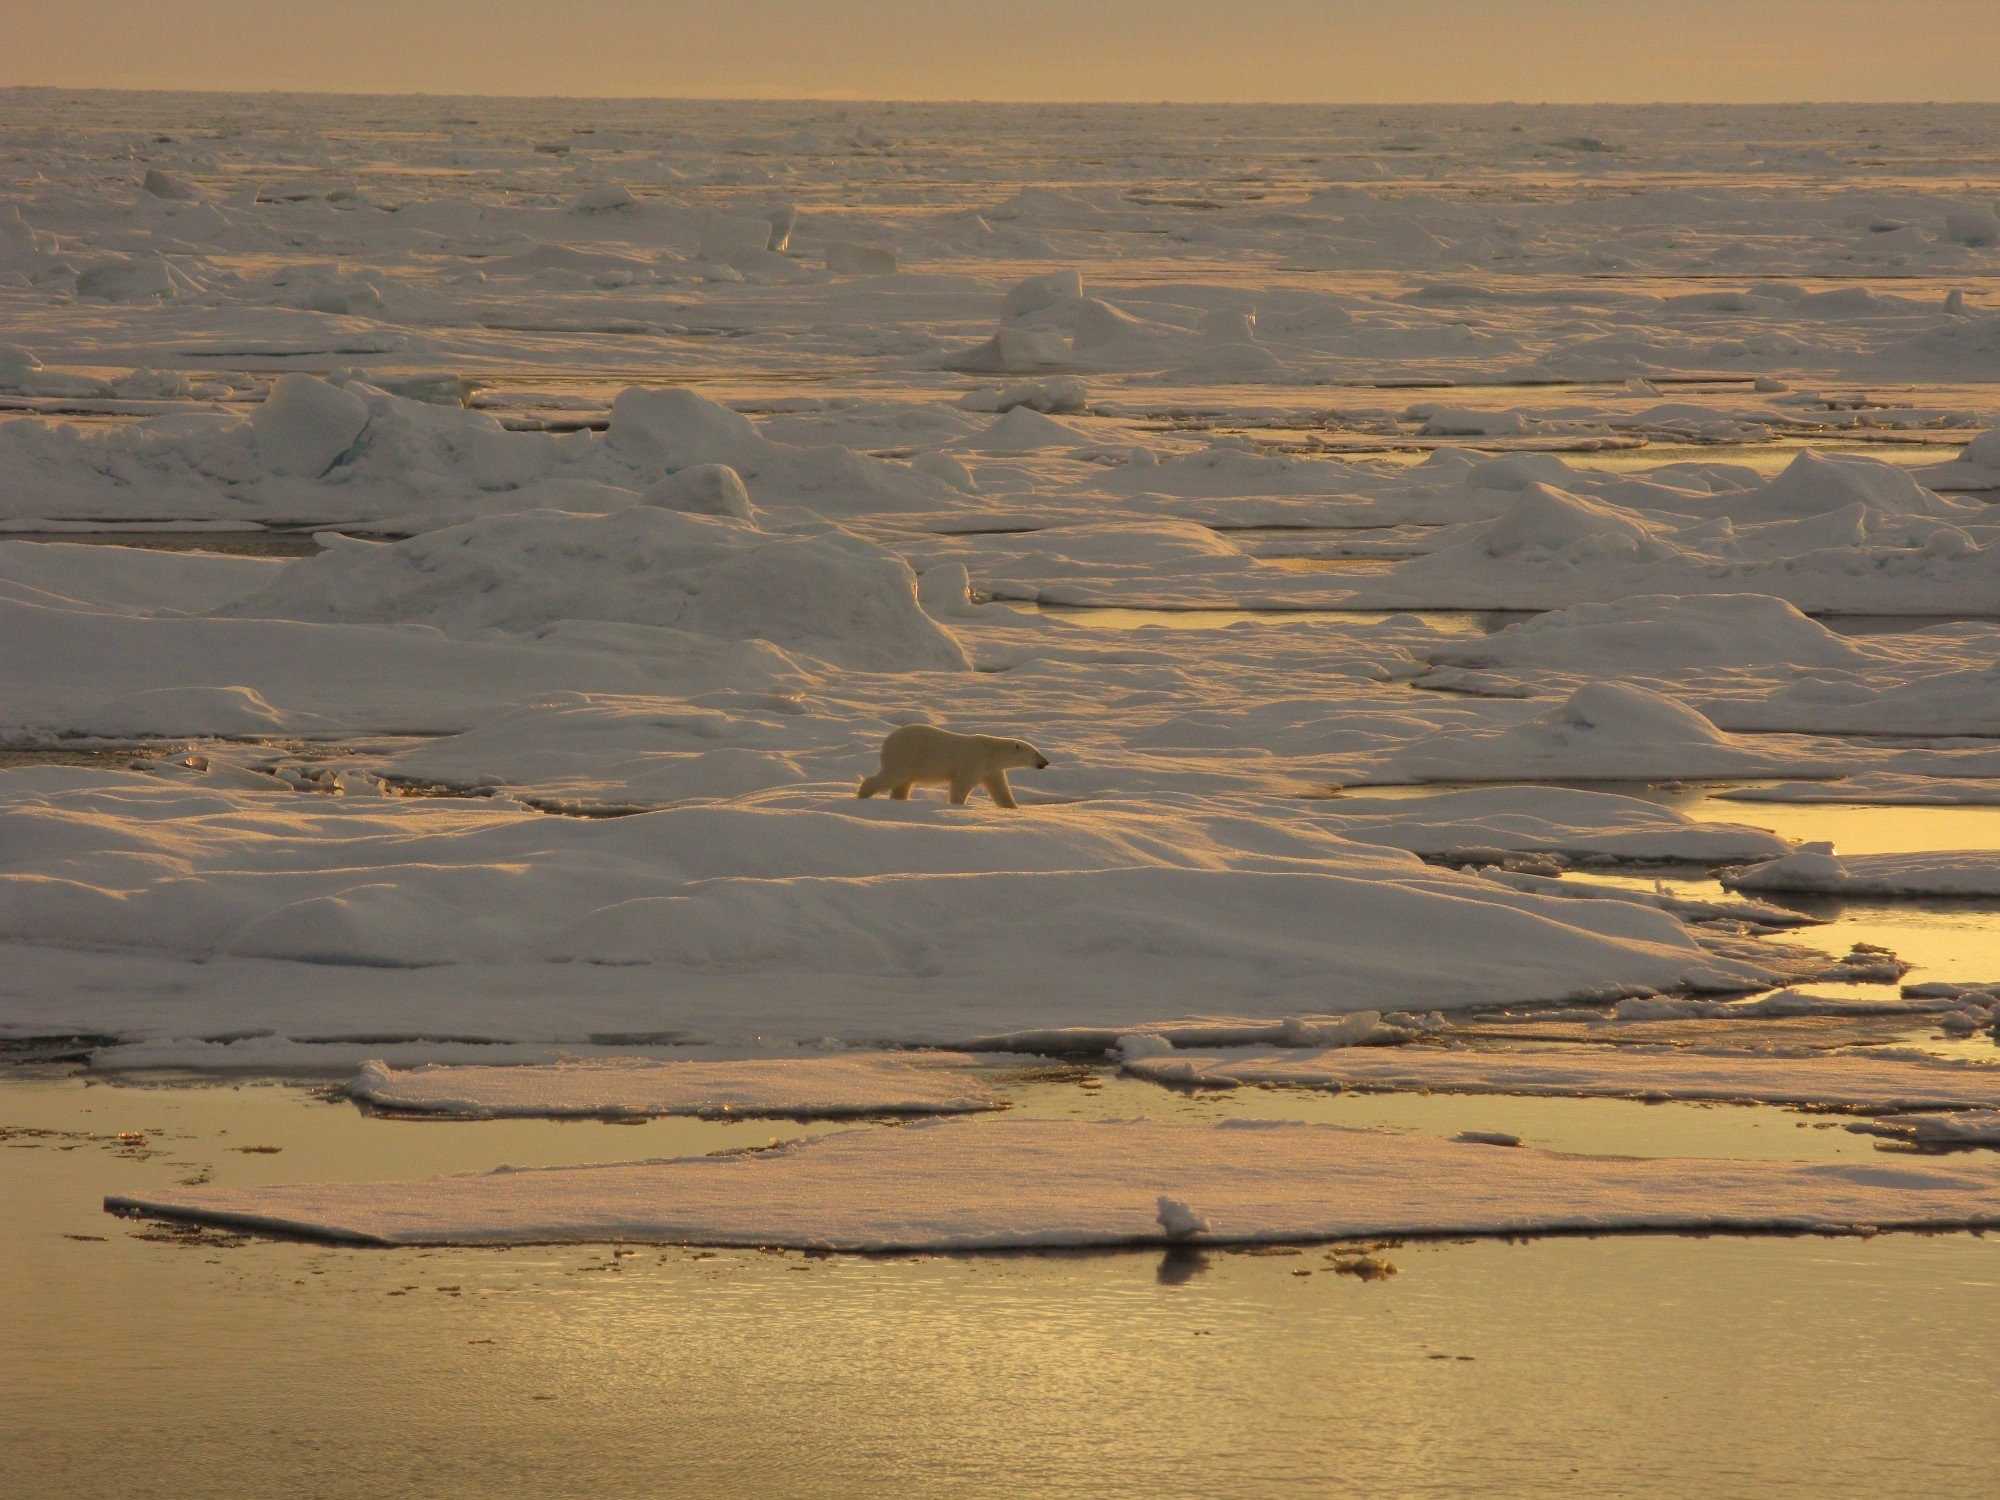 Landscape view of a polar bear surrounded by broken sea ice and open water.